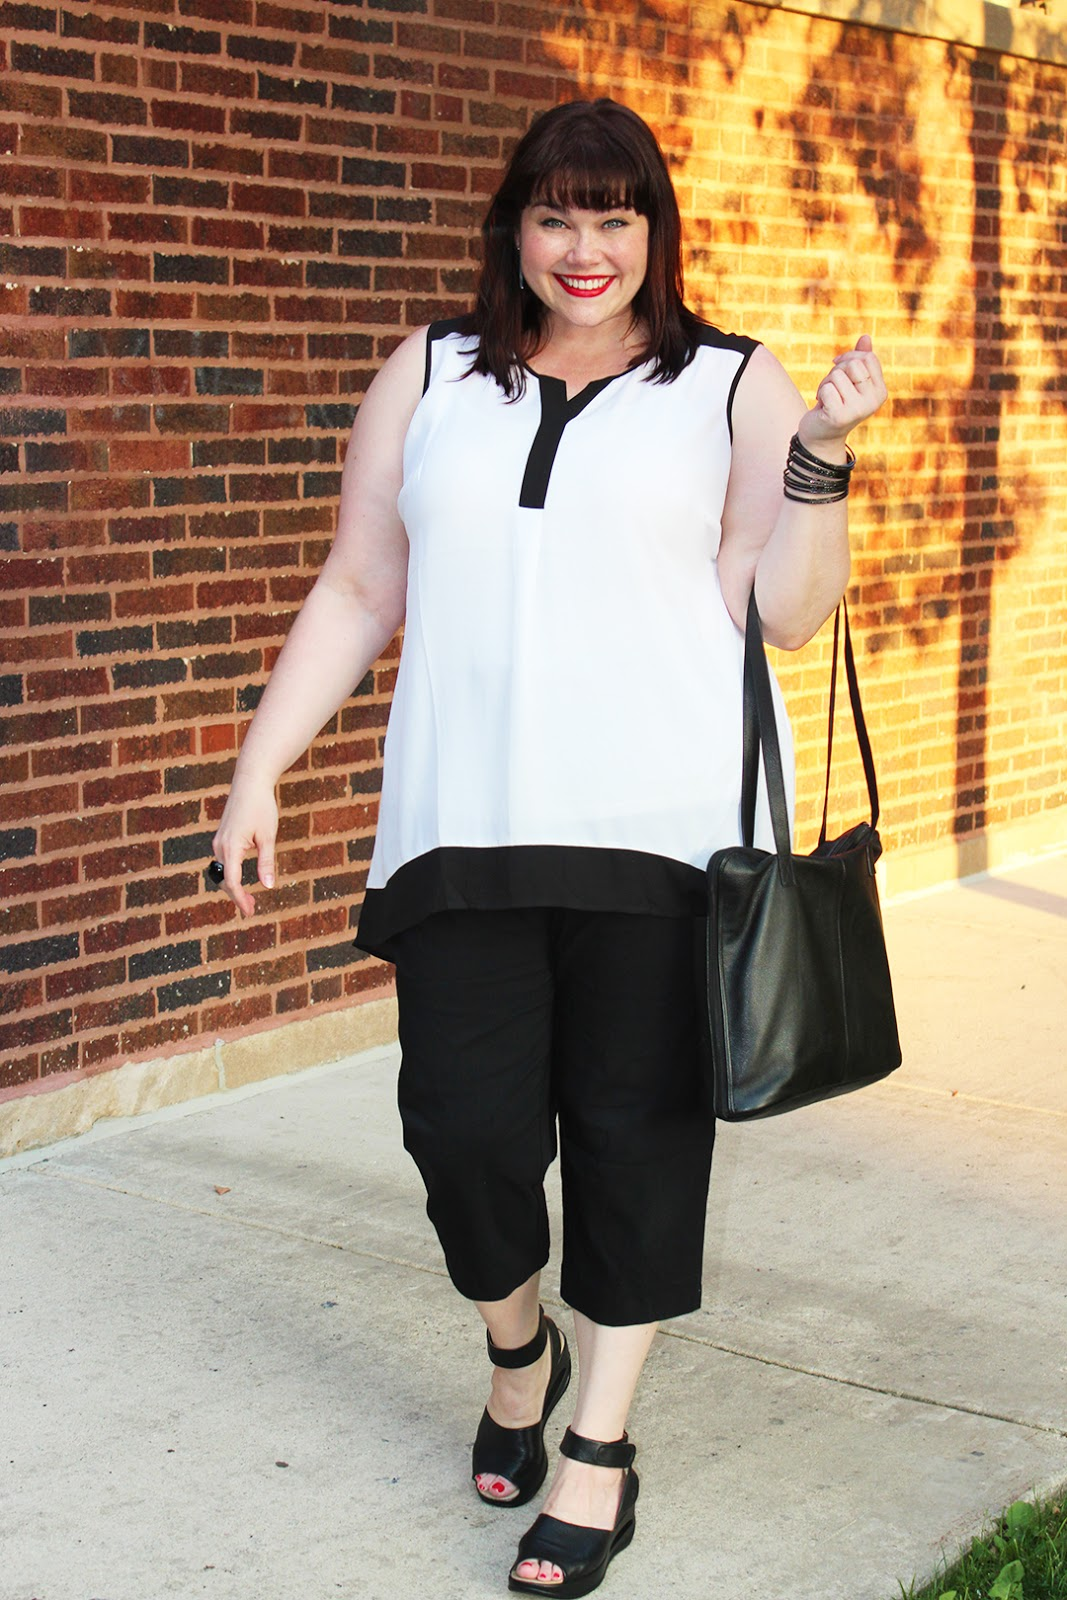 plus size blogger Amber from Style Plus Curves in a travel outfit from Avenue Plus; black capris and black and white tunic top